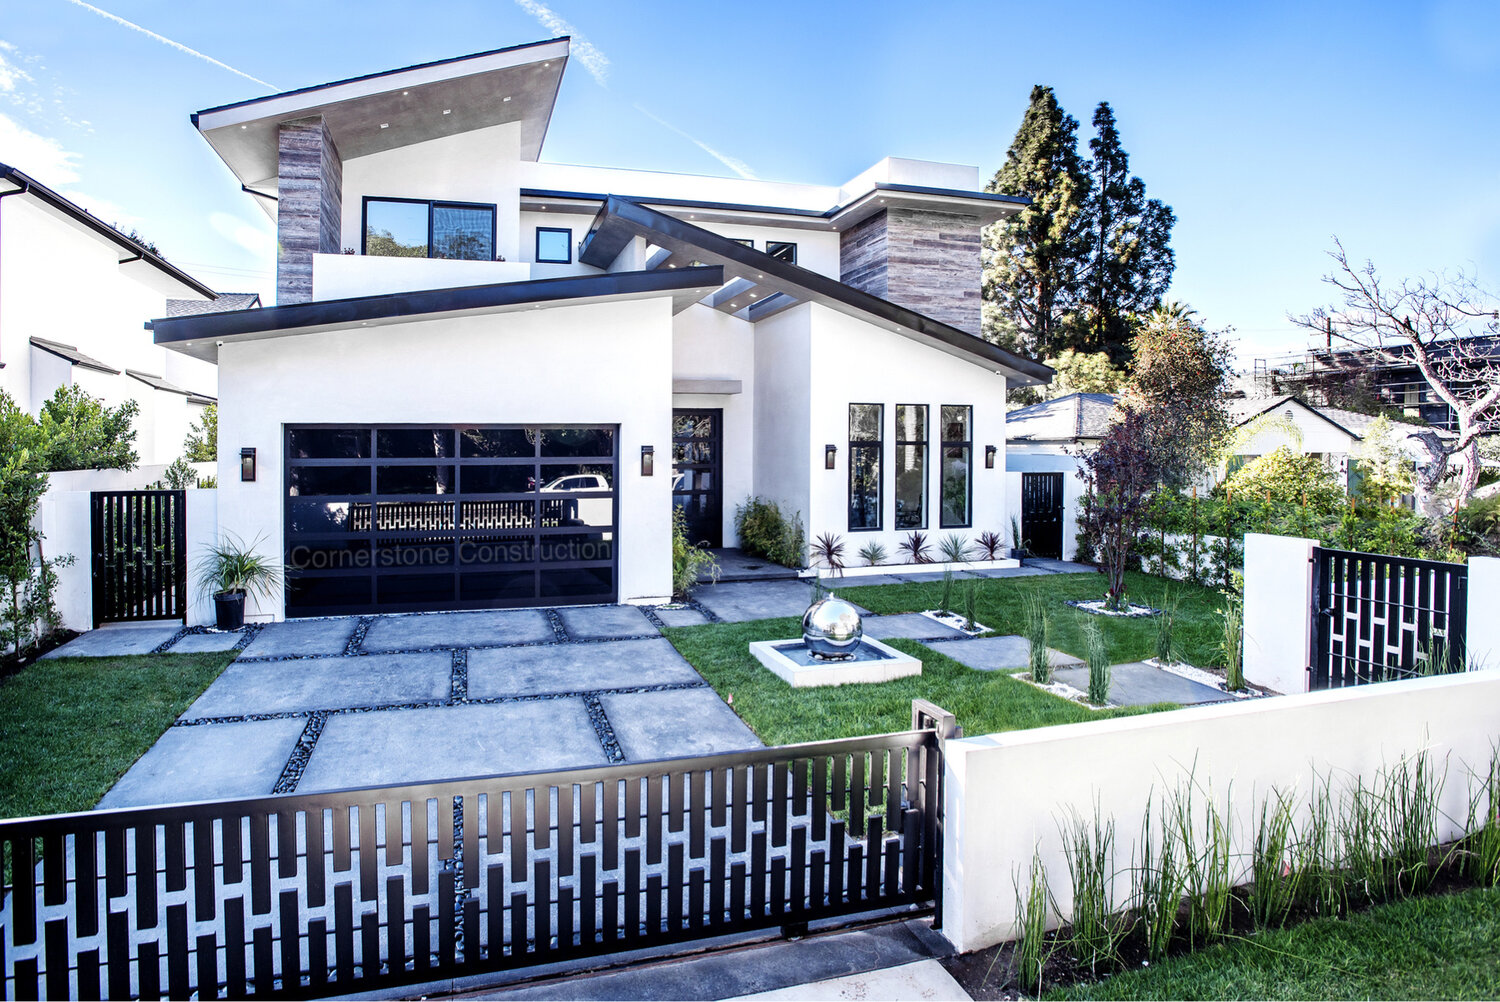 giant concrete pavers and gross driveway with metal gate